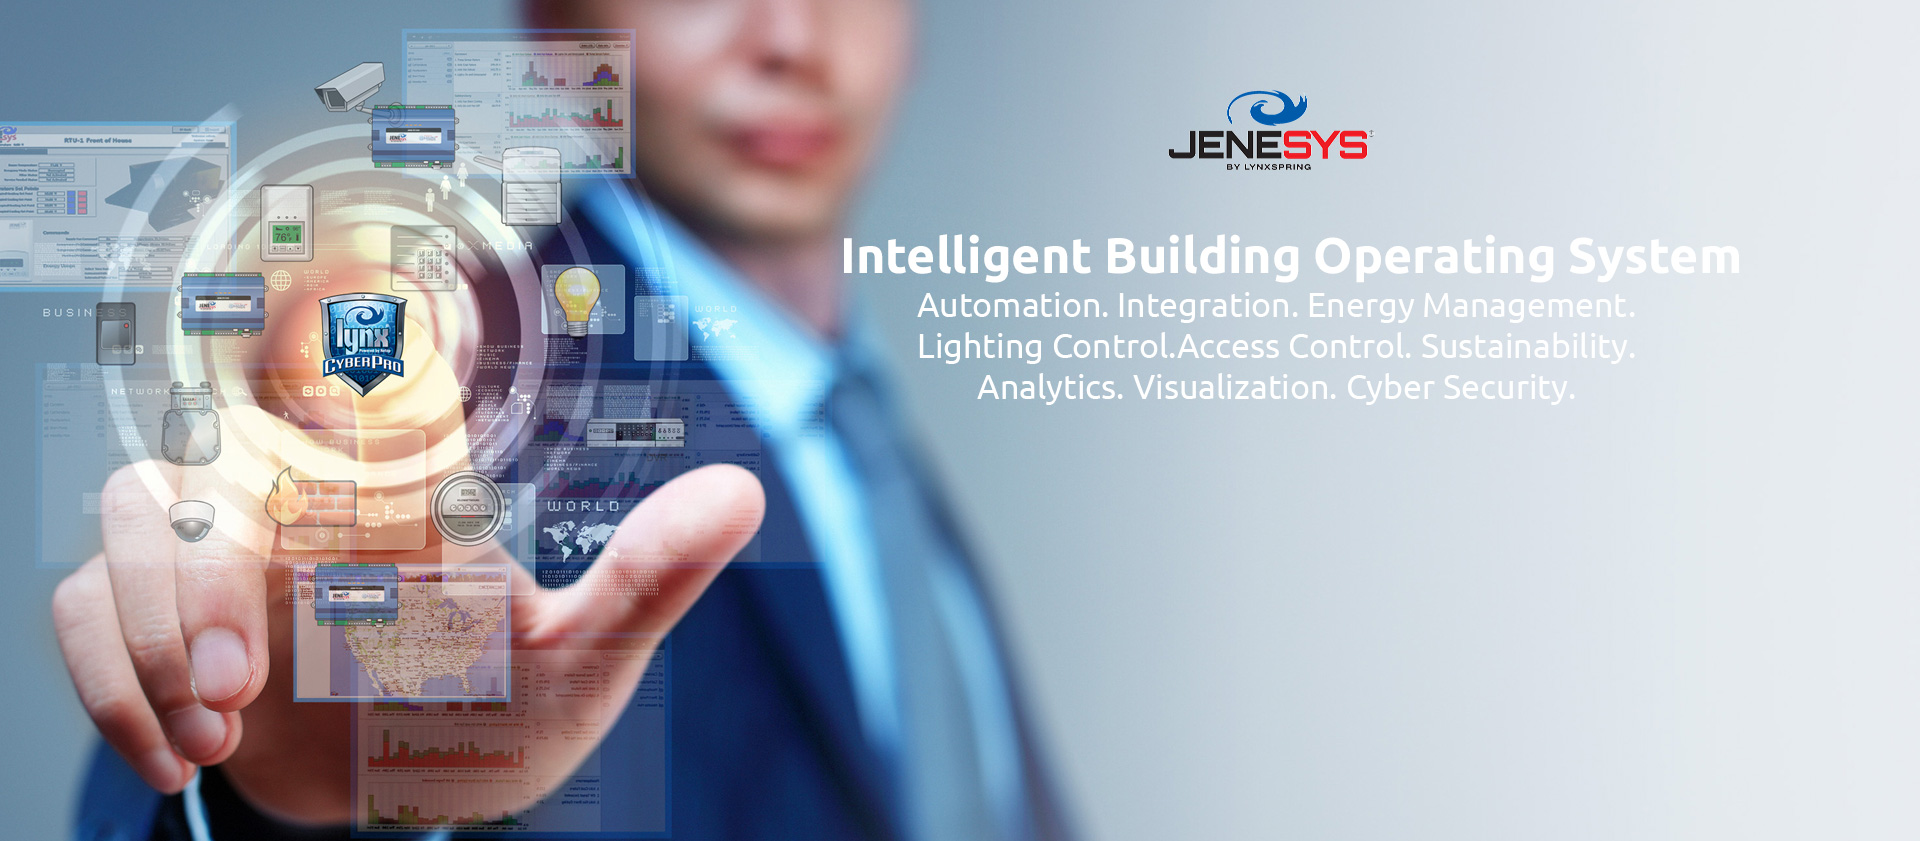 JENEsys Intelligent Building Operating System